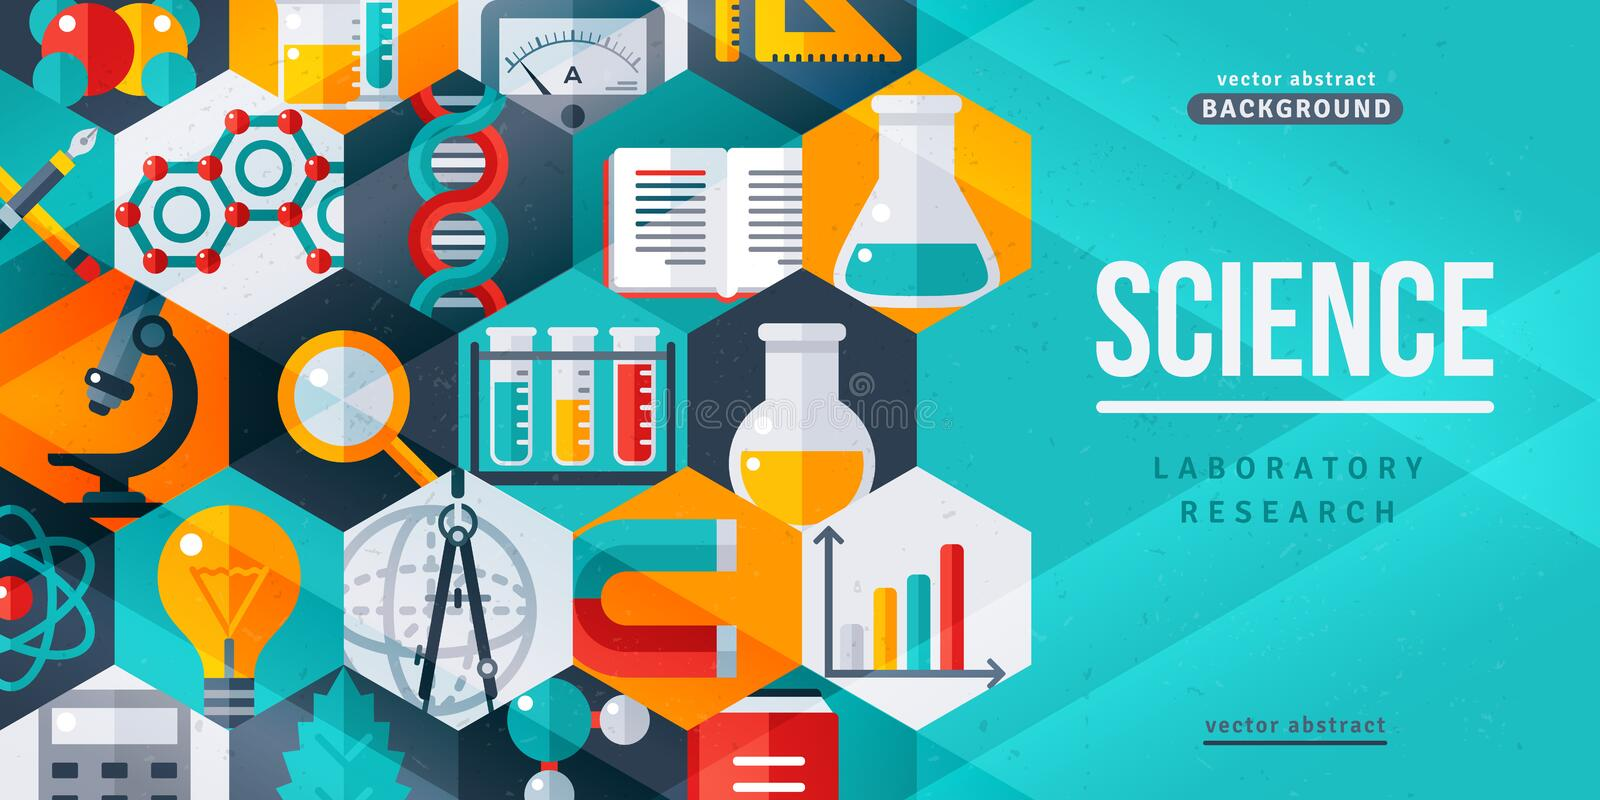 Science laboratory research creative banner royalty free illustration